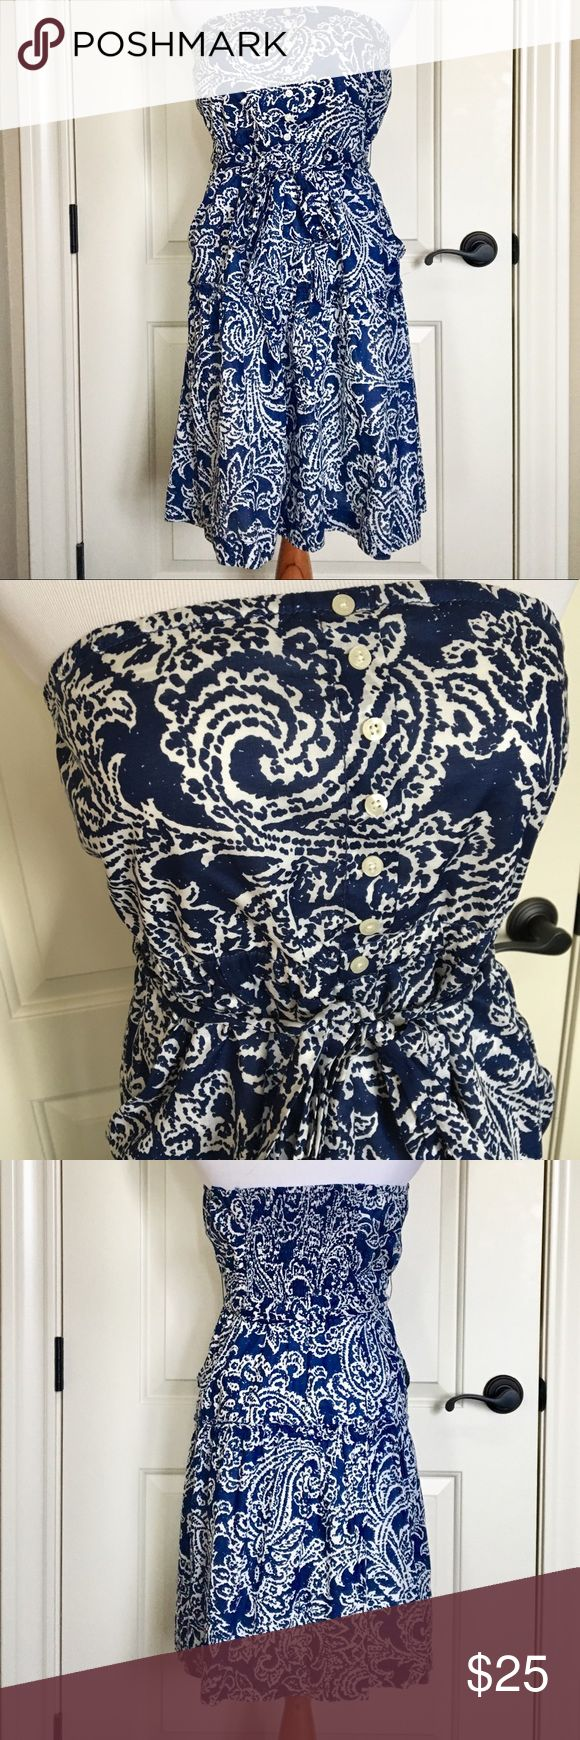 AEO Blue Strapless Dress Size 12 American Eagle Outfitters  Size 12 Beautiful blue and white strapless dress Two pockets Lined  Worn only once! If you need additional pictures or measurements please feel free to ask! 😊 All reasonable offers considered American Eagle Outfitters Dresses Midi #americaneagleoutfitters